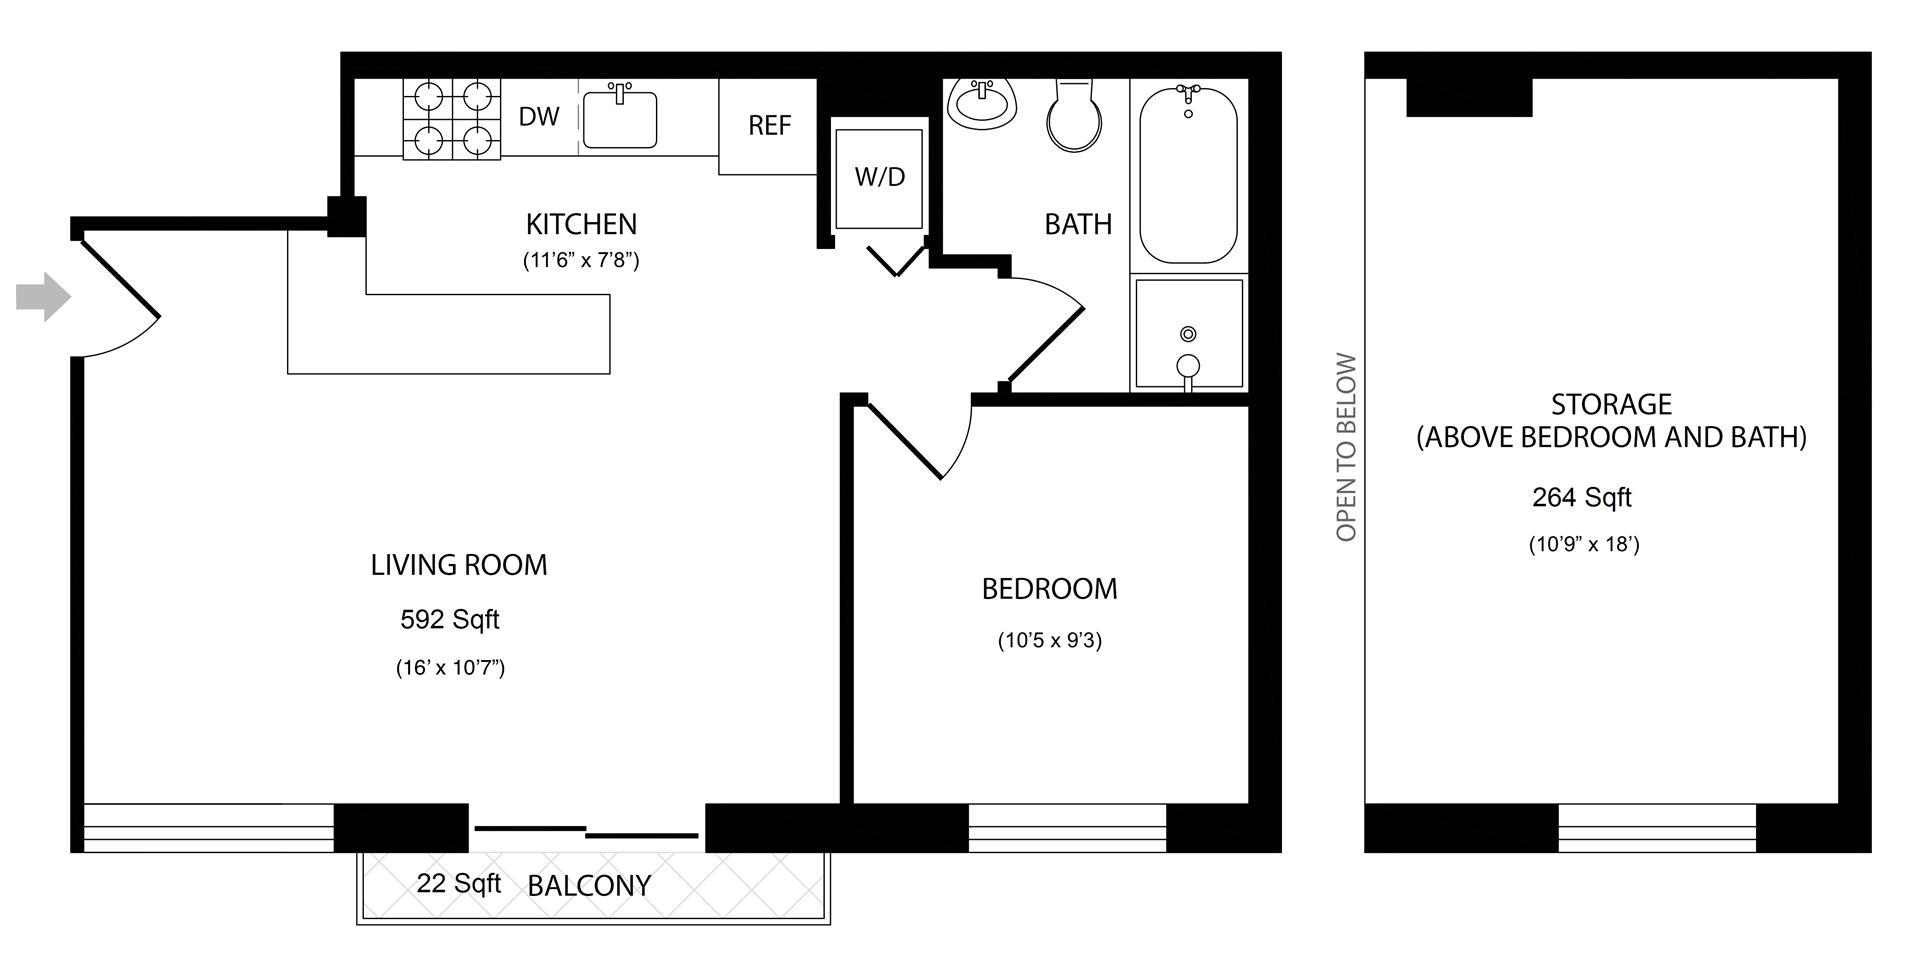 Floor plan of 117 Kingsland Avenue, 3B - Greenpoint, New York